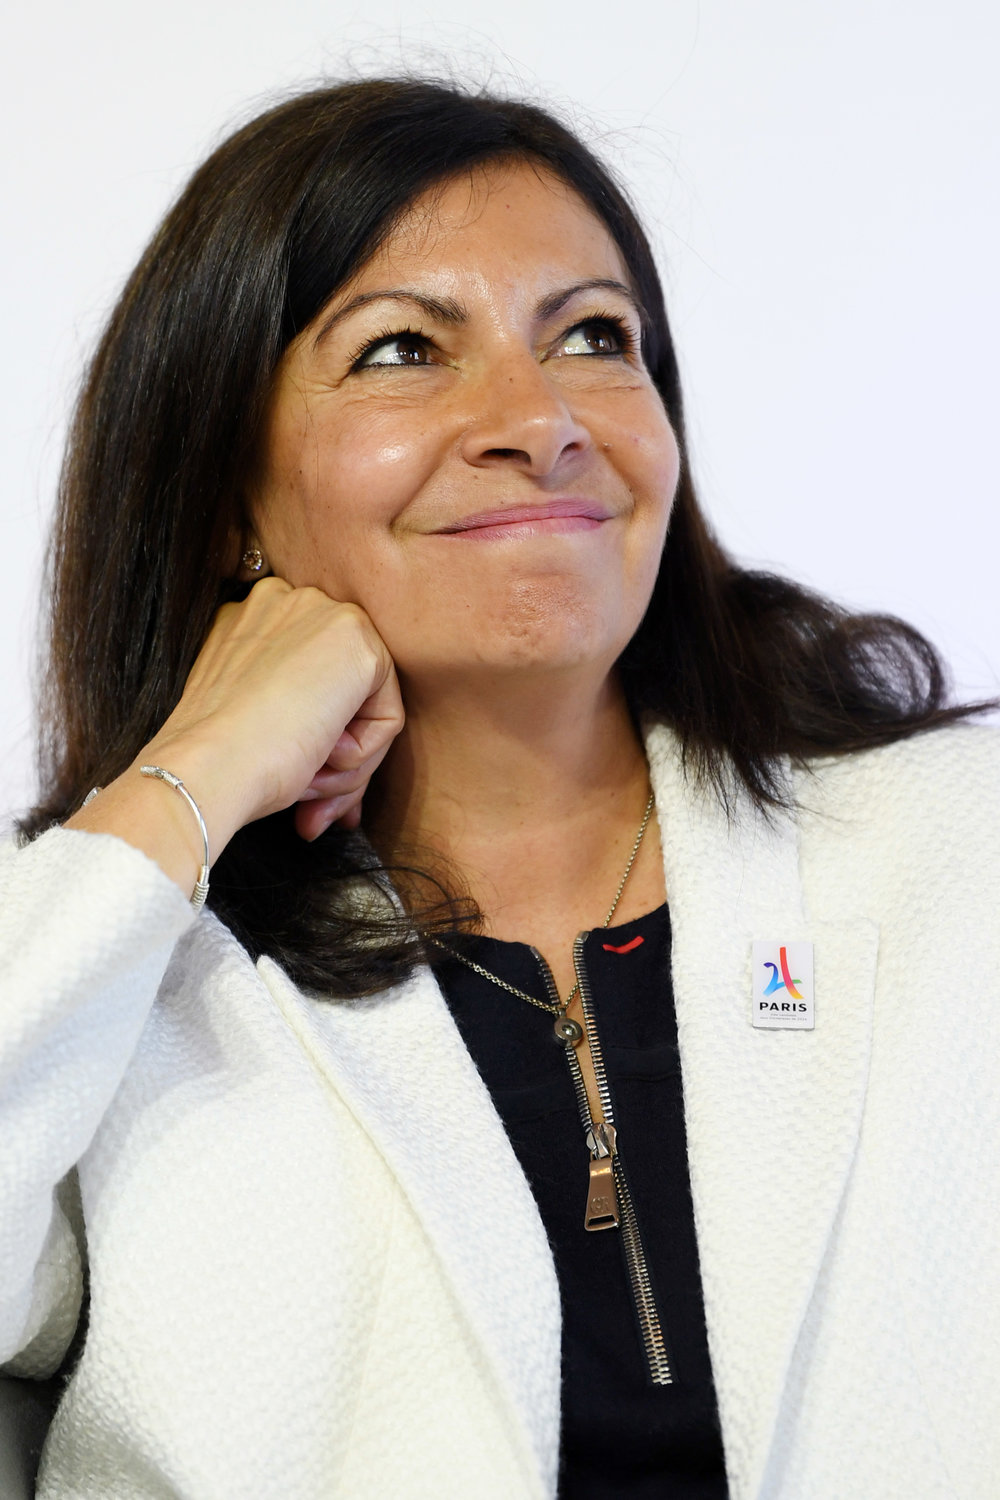 Paris mayor Anne Hidalgo during Tuesday's news conference // Philippe Millereau / KMSP / Paris 2024